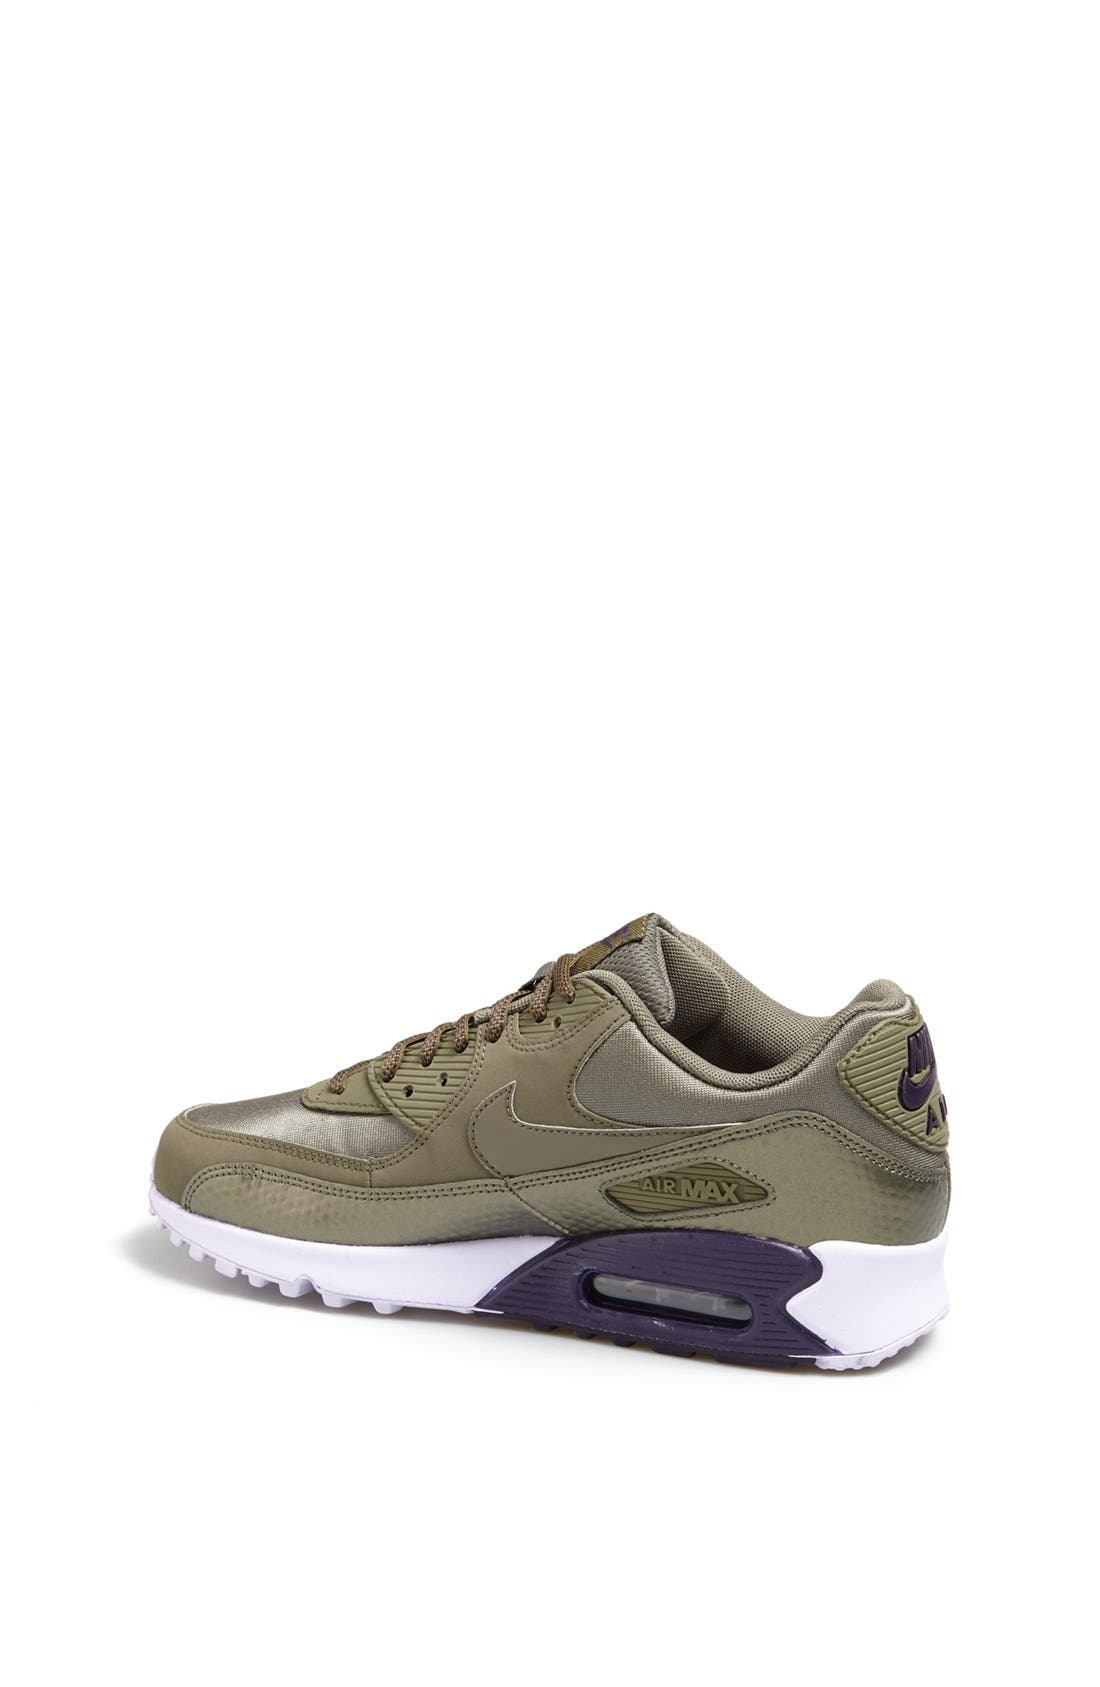 Alternate Image 2  - Nike 'Air Max 90' Sneaker (Women)